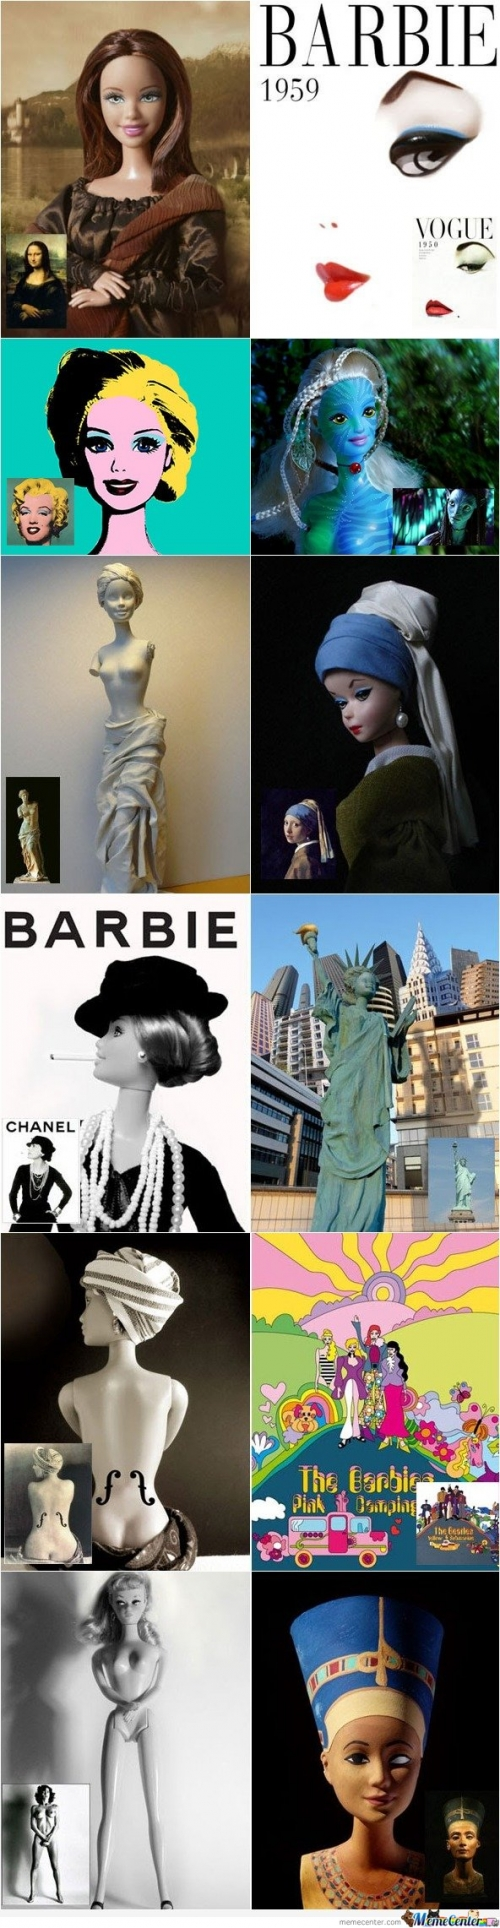 Barbie and Artwork